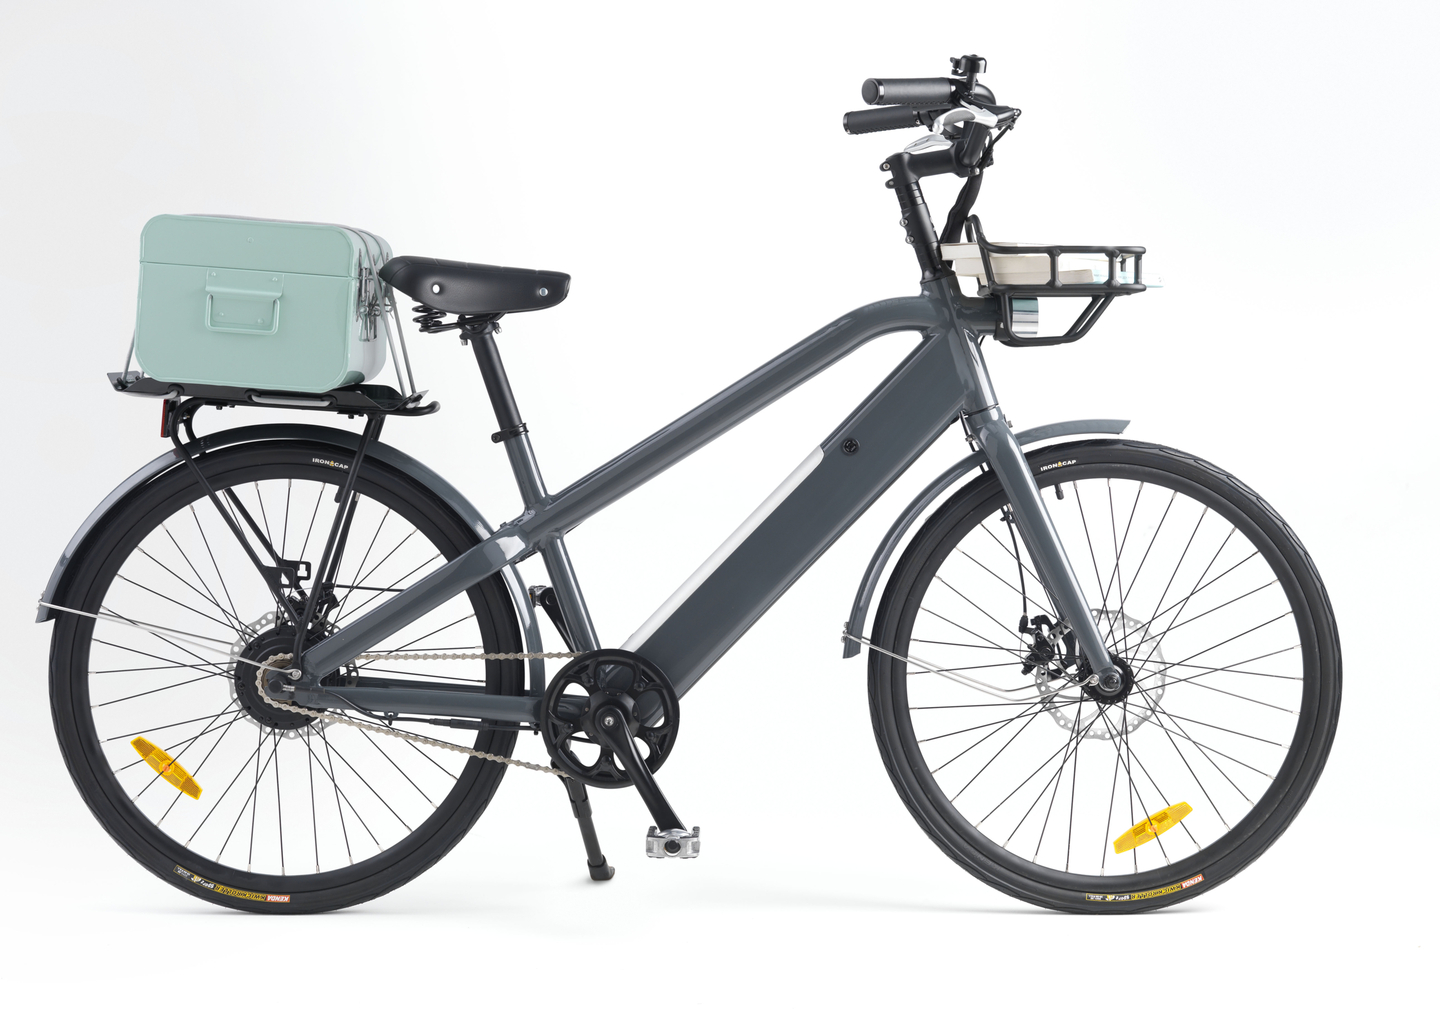 velo-eletectrique-design